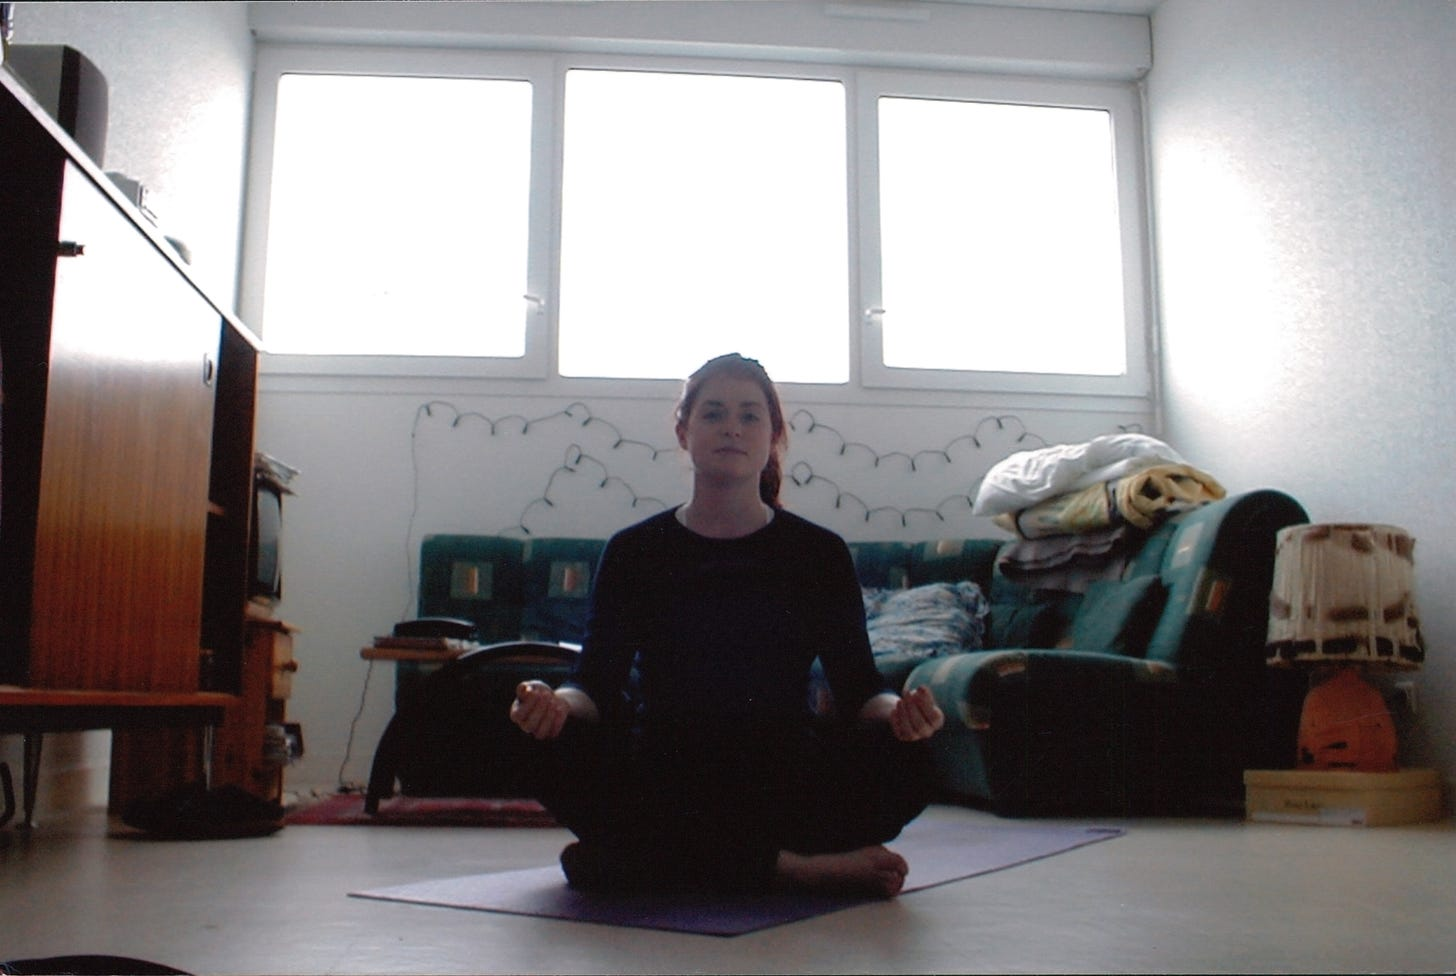 Charlotte sits in her apartment living room on a purple yoga mat with her legs folded and her wrists resting on her knees.